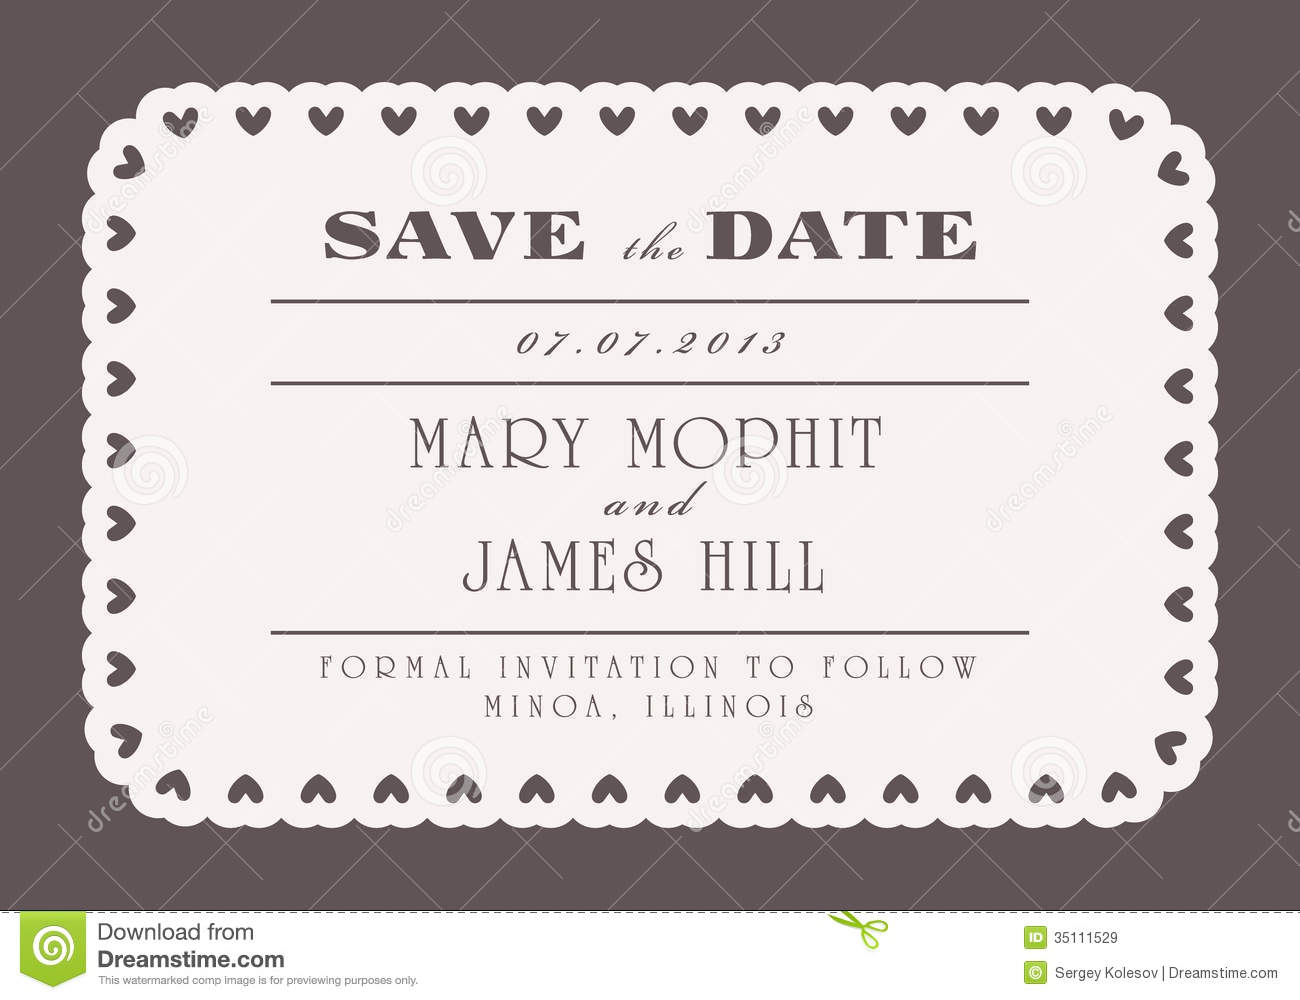 Save the date with vintage background artwork royalty free for Free vintage save the date templates